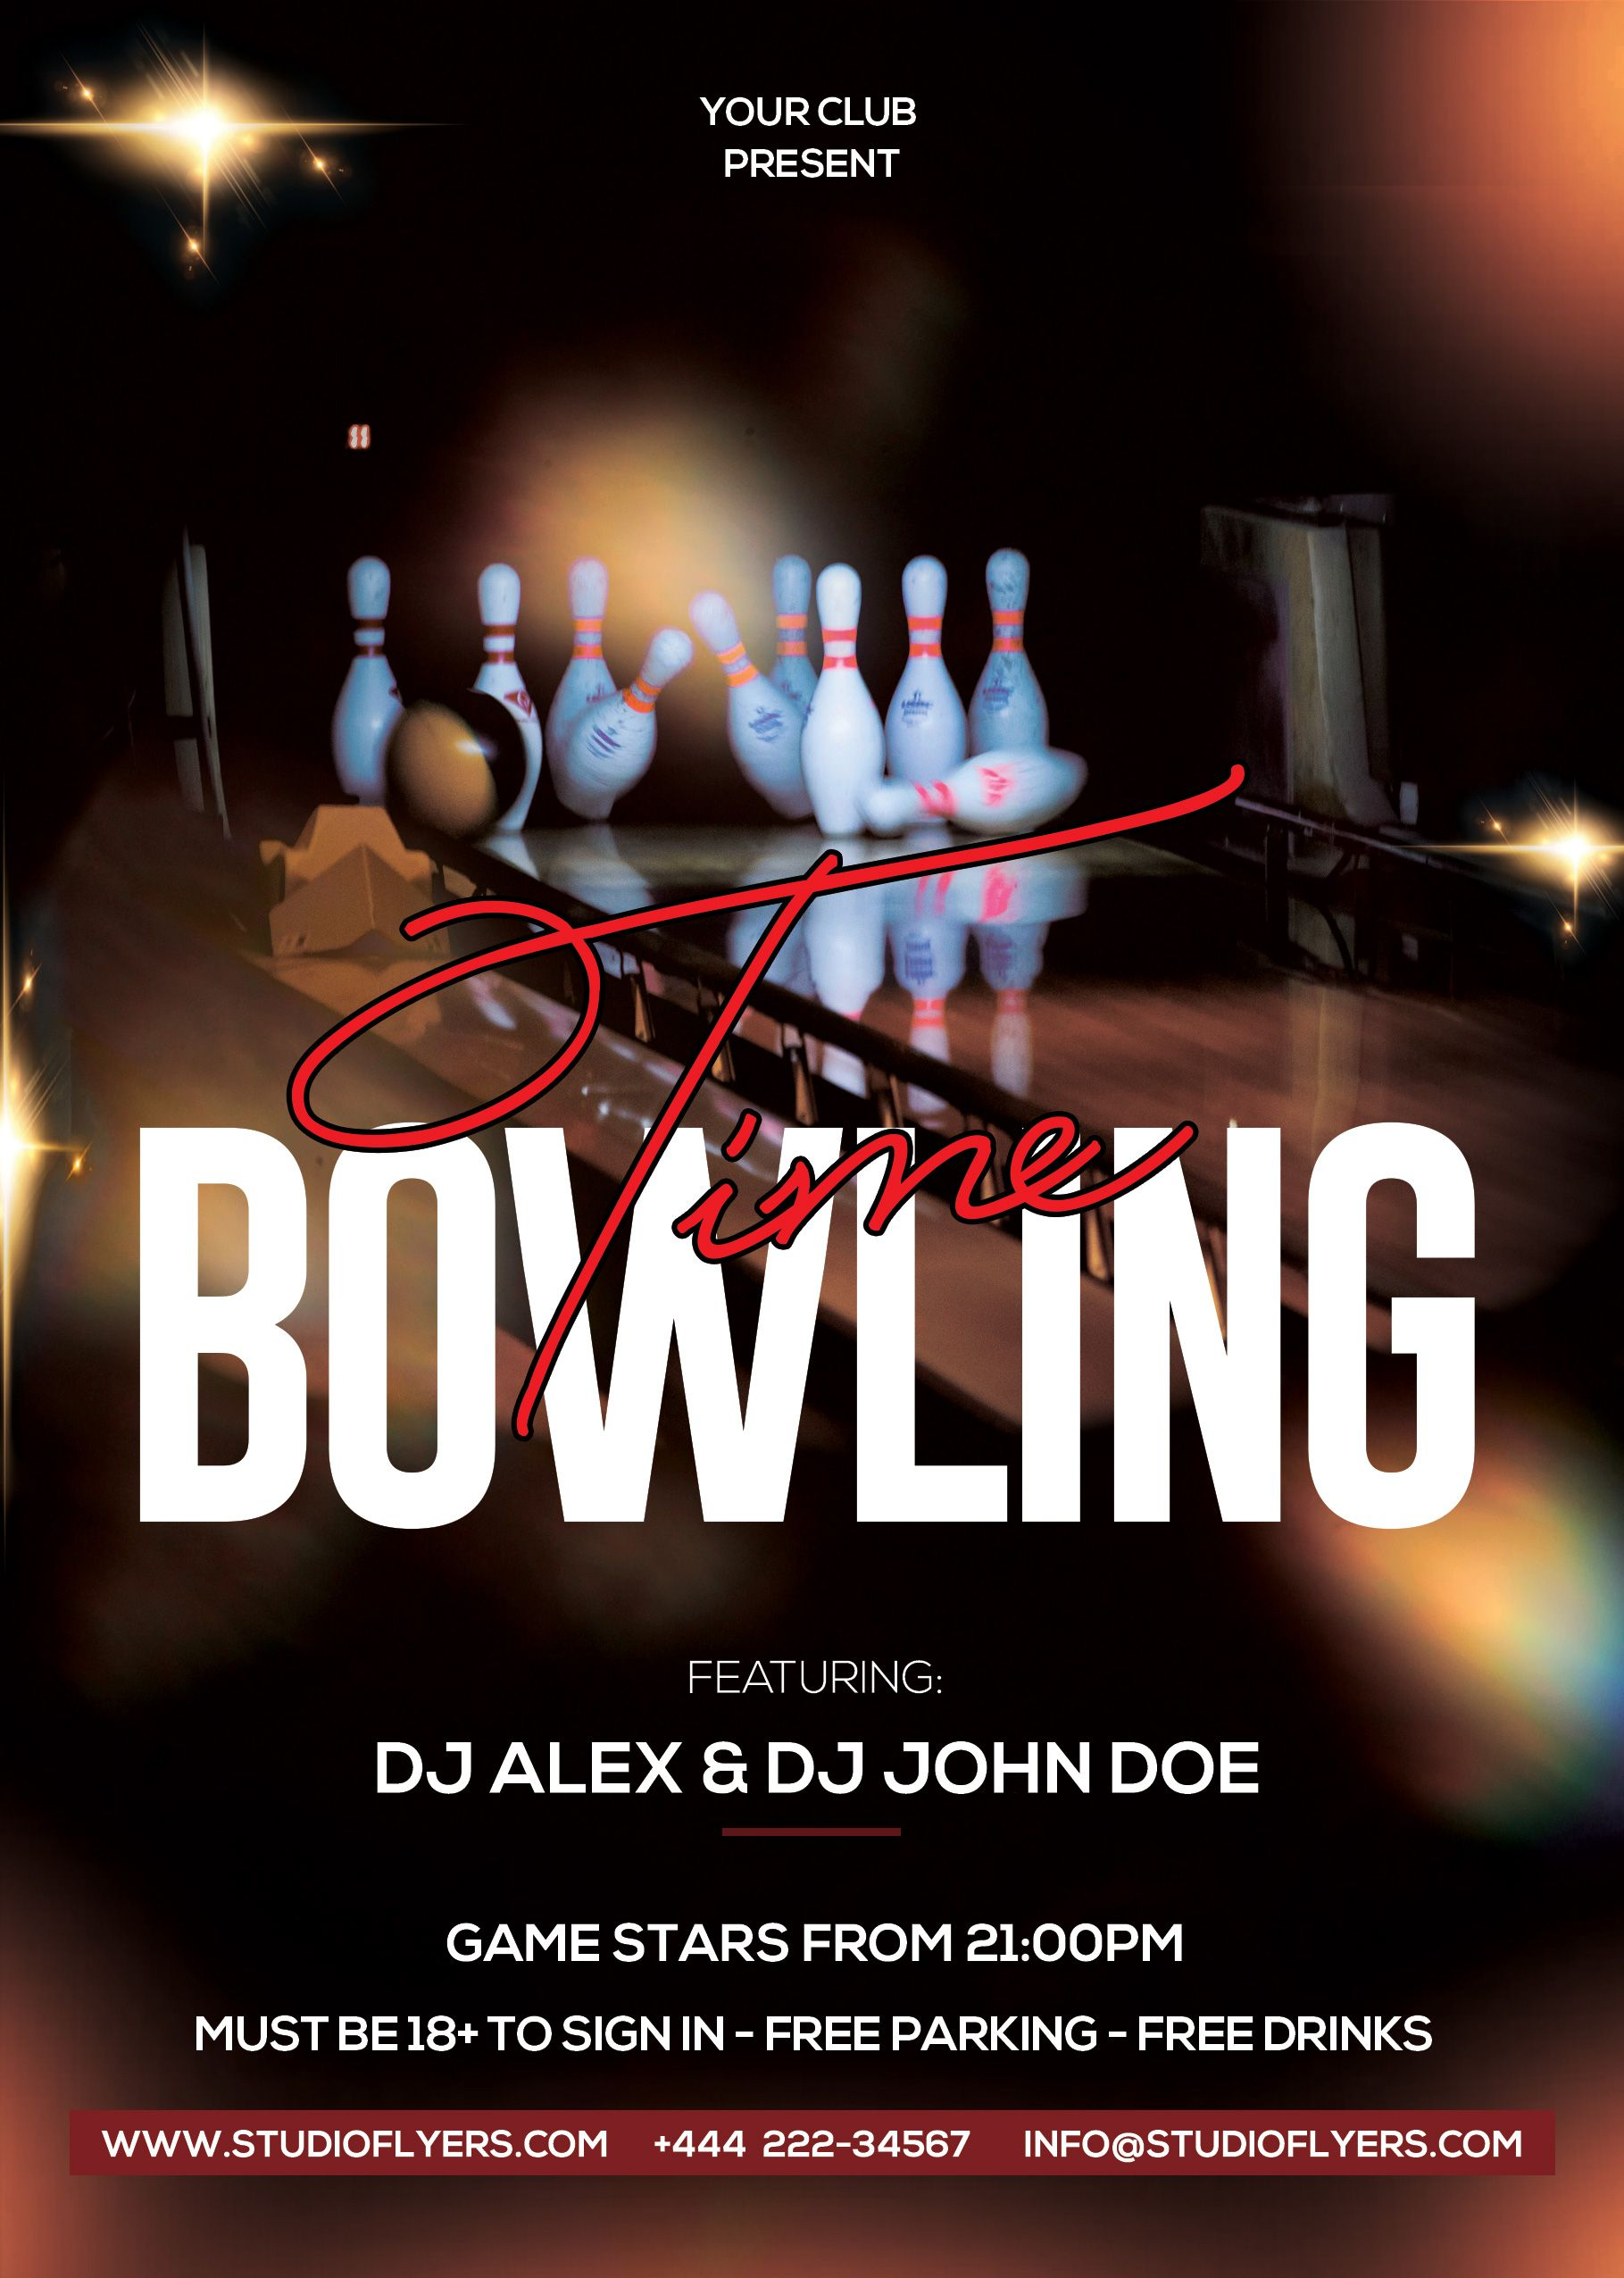 Bowling Time Free Psd Flyer Template Studioflyers Com Free Psd Flyer Templates Psd Flyer Templates Free Psd Flyer